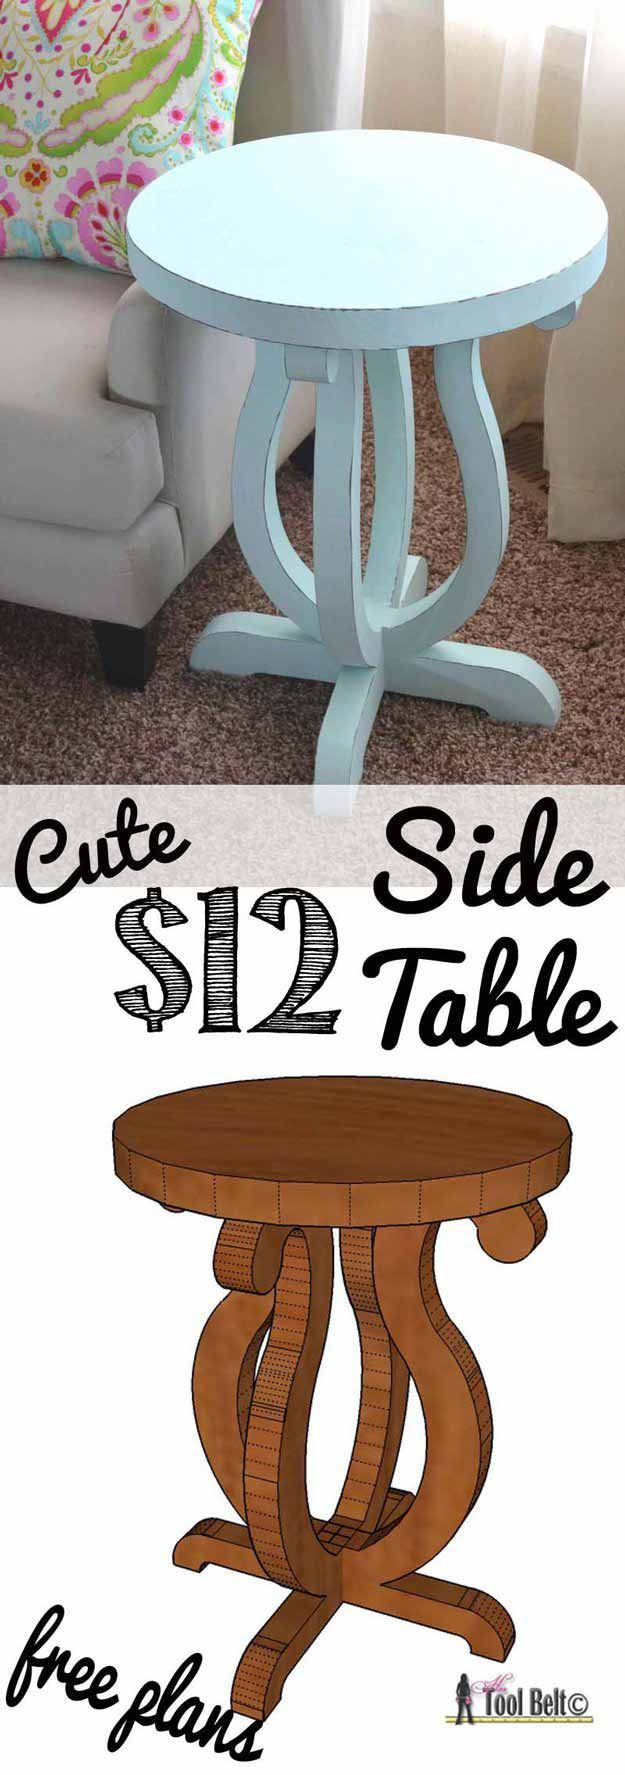 Table from a single 1 x 8 board see more diy twisty side table - See More Cute Side Table Easy Woodworking Projects